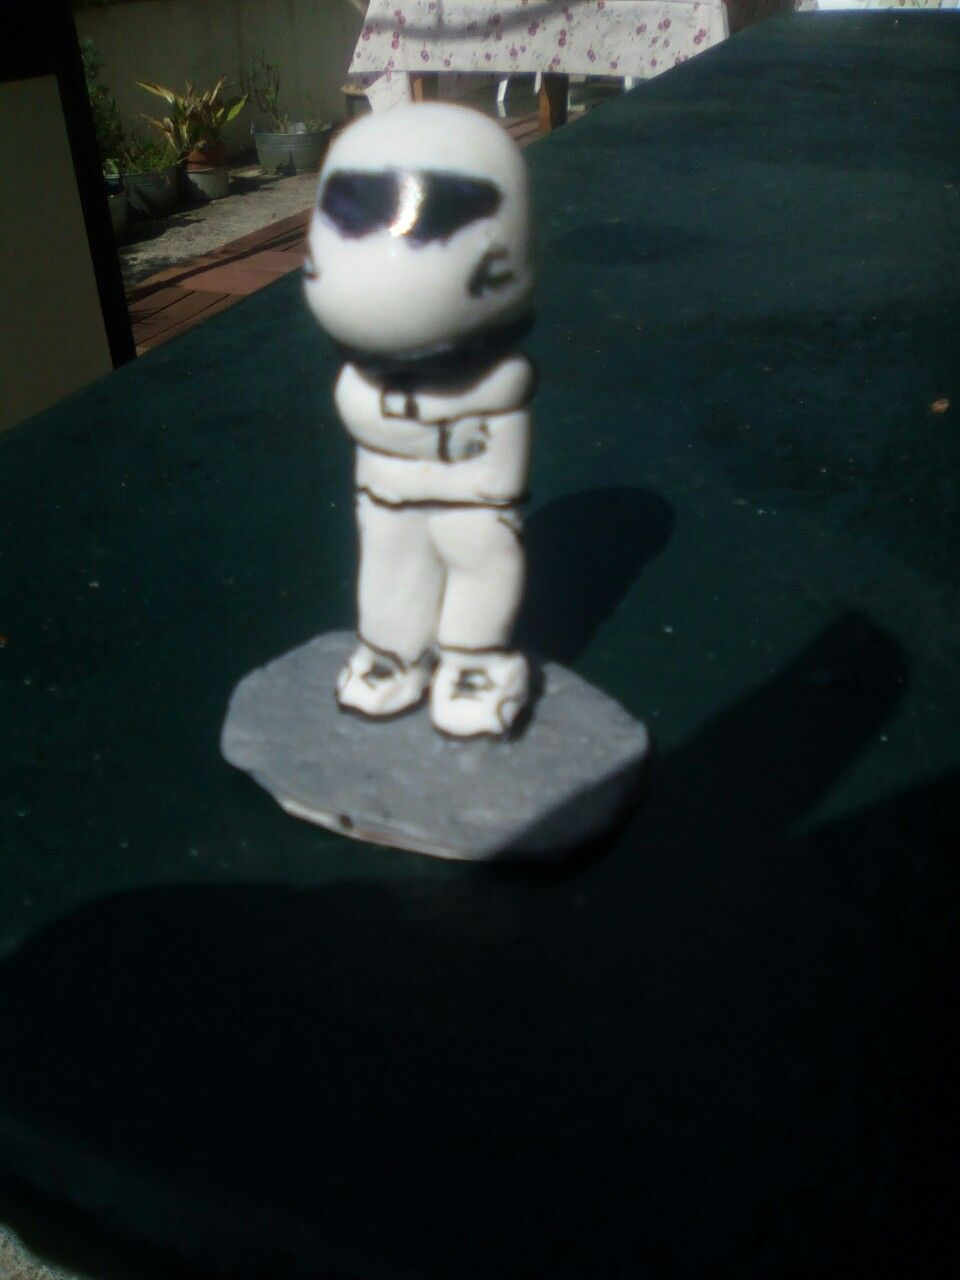 Stig of top gear fimo/clay #fimo #clay #creation #topgear #stig #car #voiture